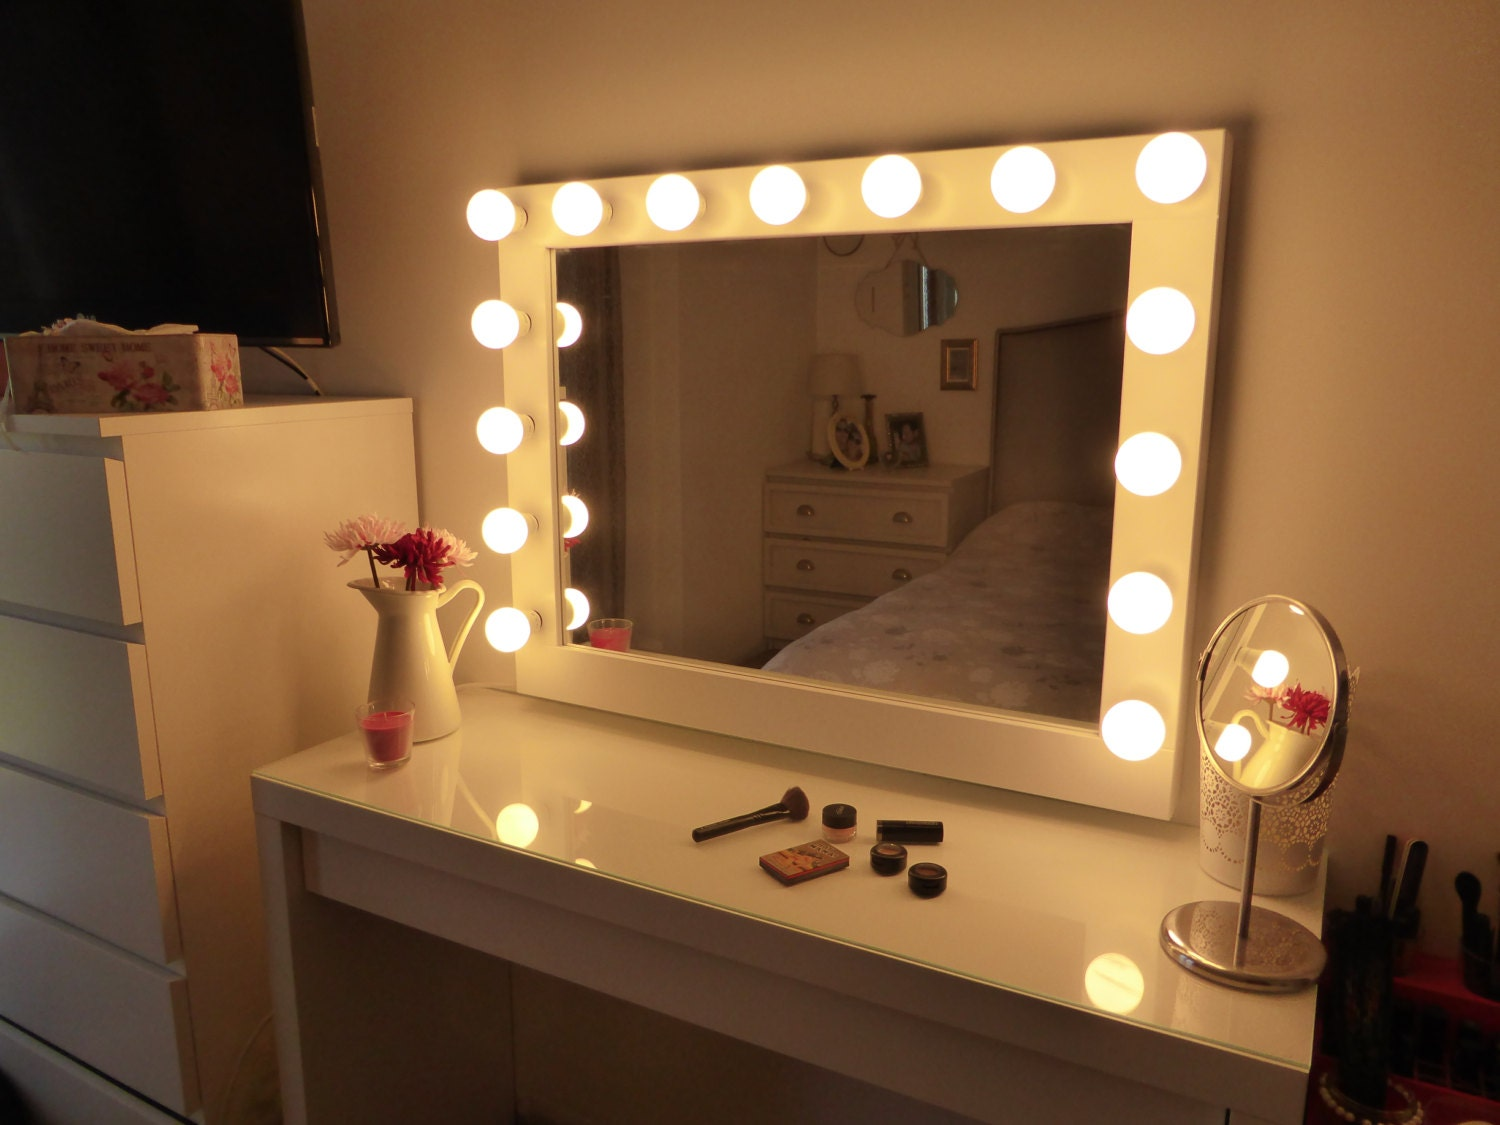 Vanity Lights In Mirror : Hollywood lighted vanity mirror-large makeup mirror with